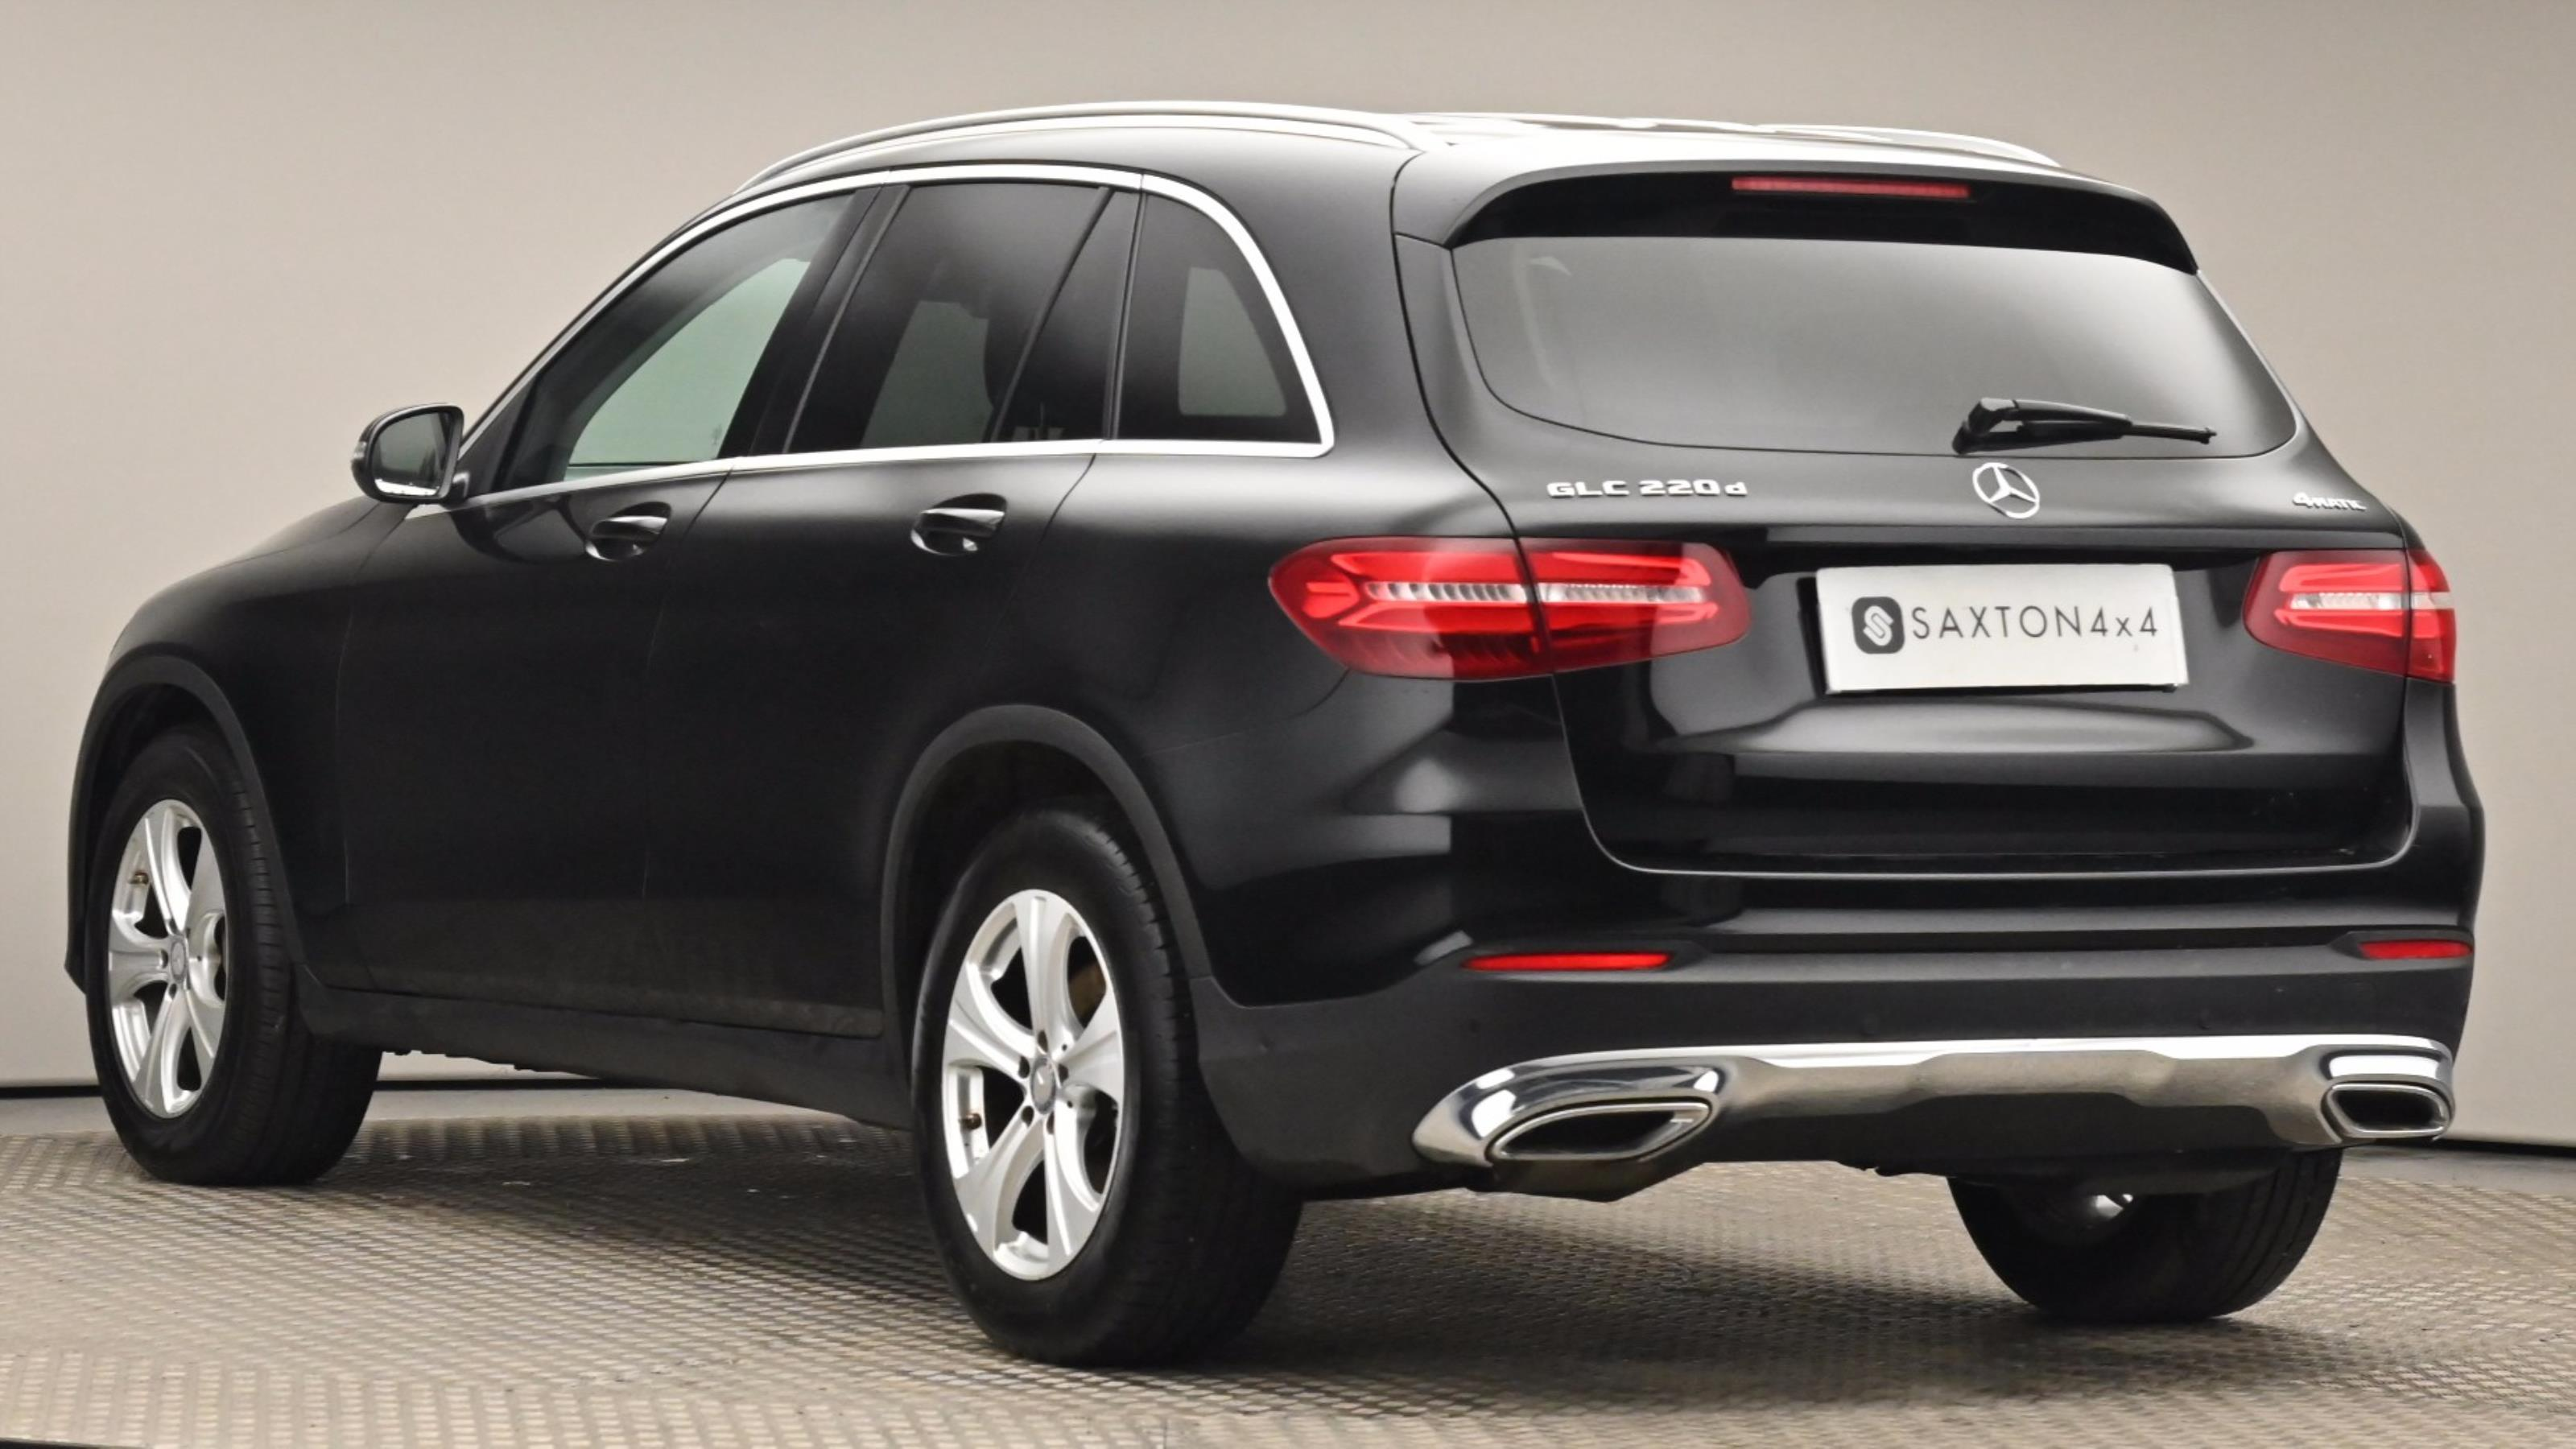 Used 16 Mercedes-Benz GLC COUPE GLC 220d 4Matic Sport 5dr 9G-Tronic Black at Saxton4x4